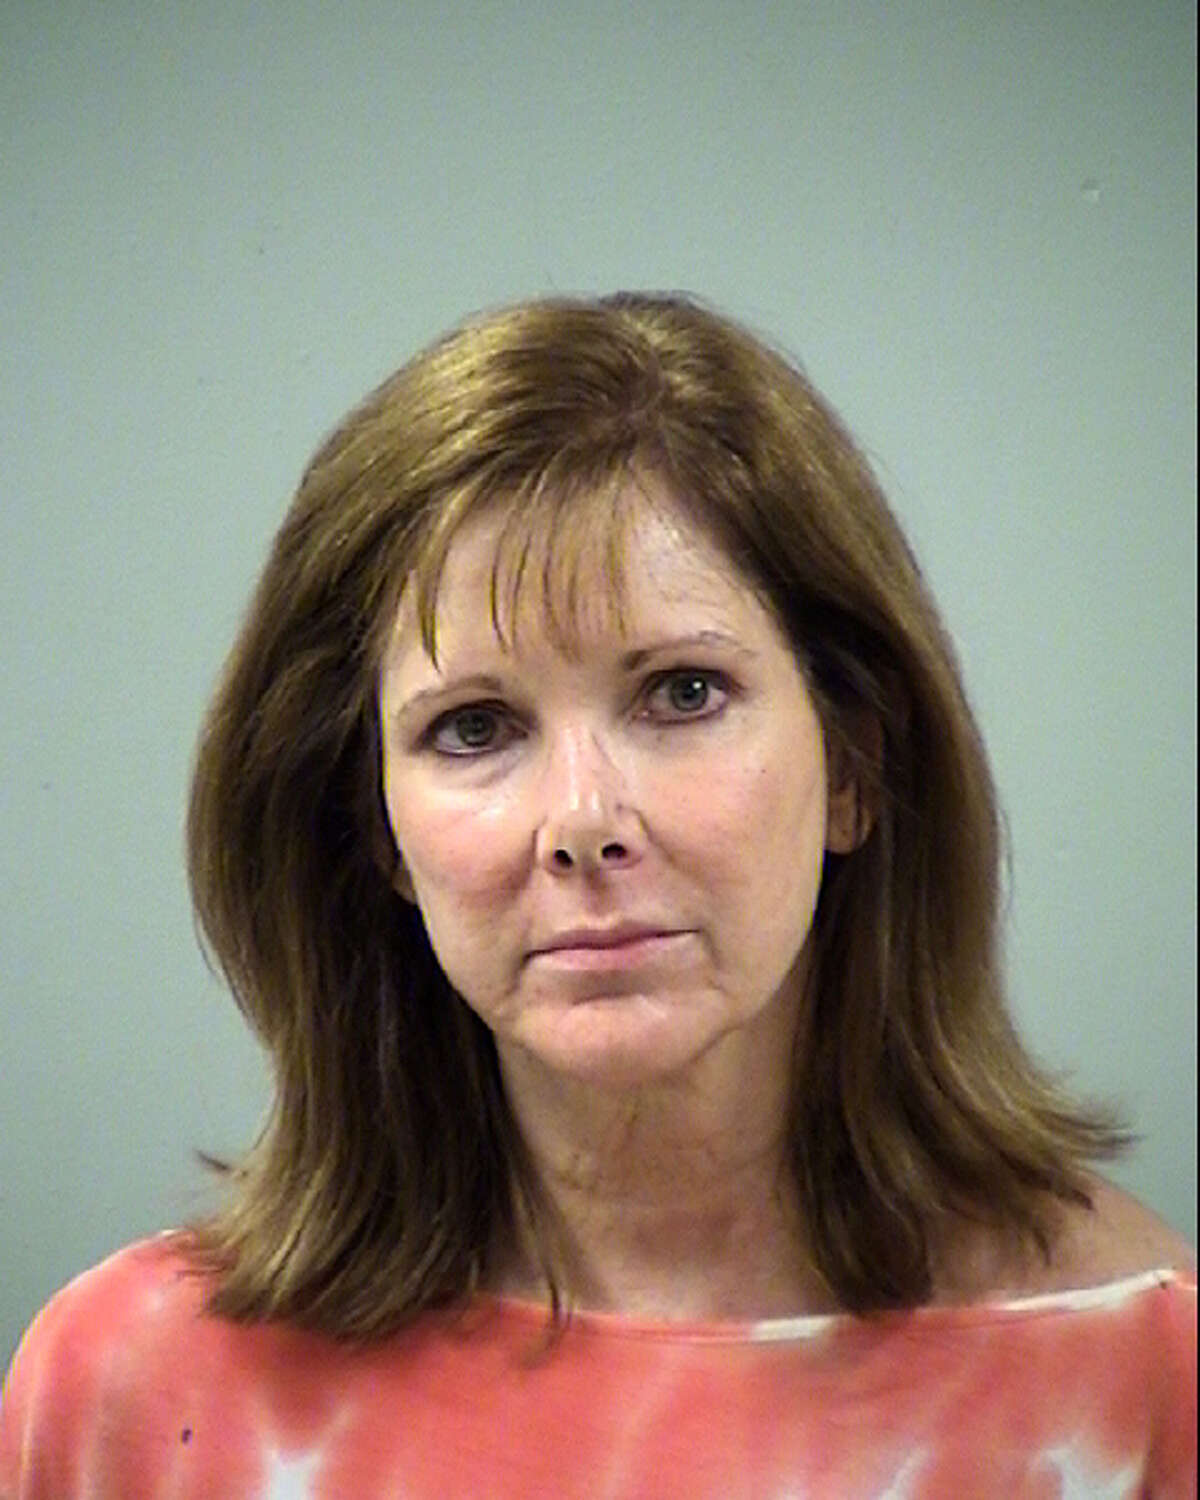 Karen Gallagher was arrested on a charge of driving while intoxicated following a crash Wednesday night on the North Side.